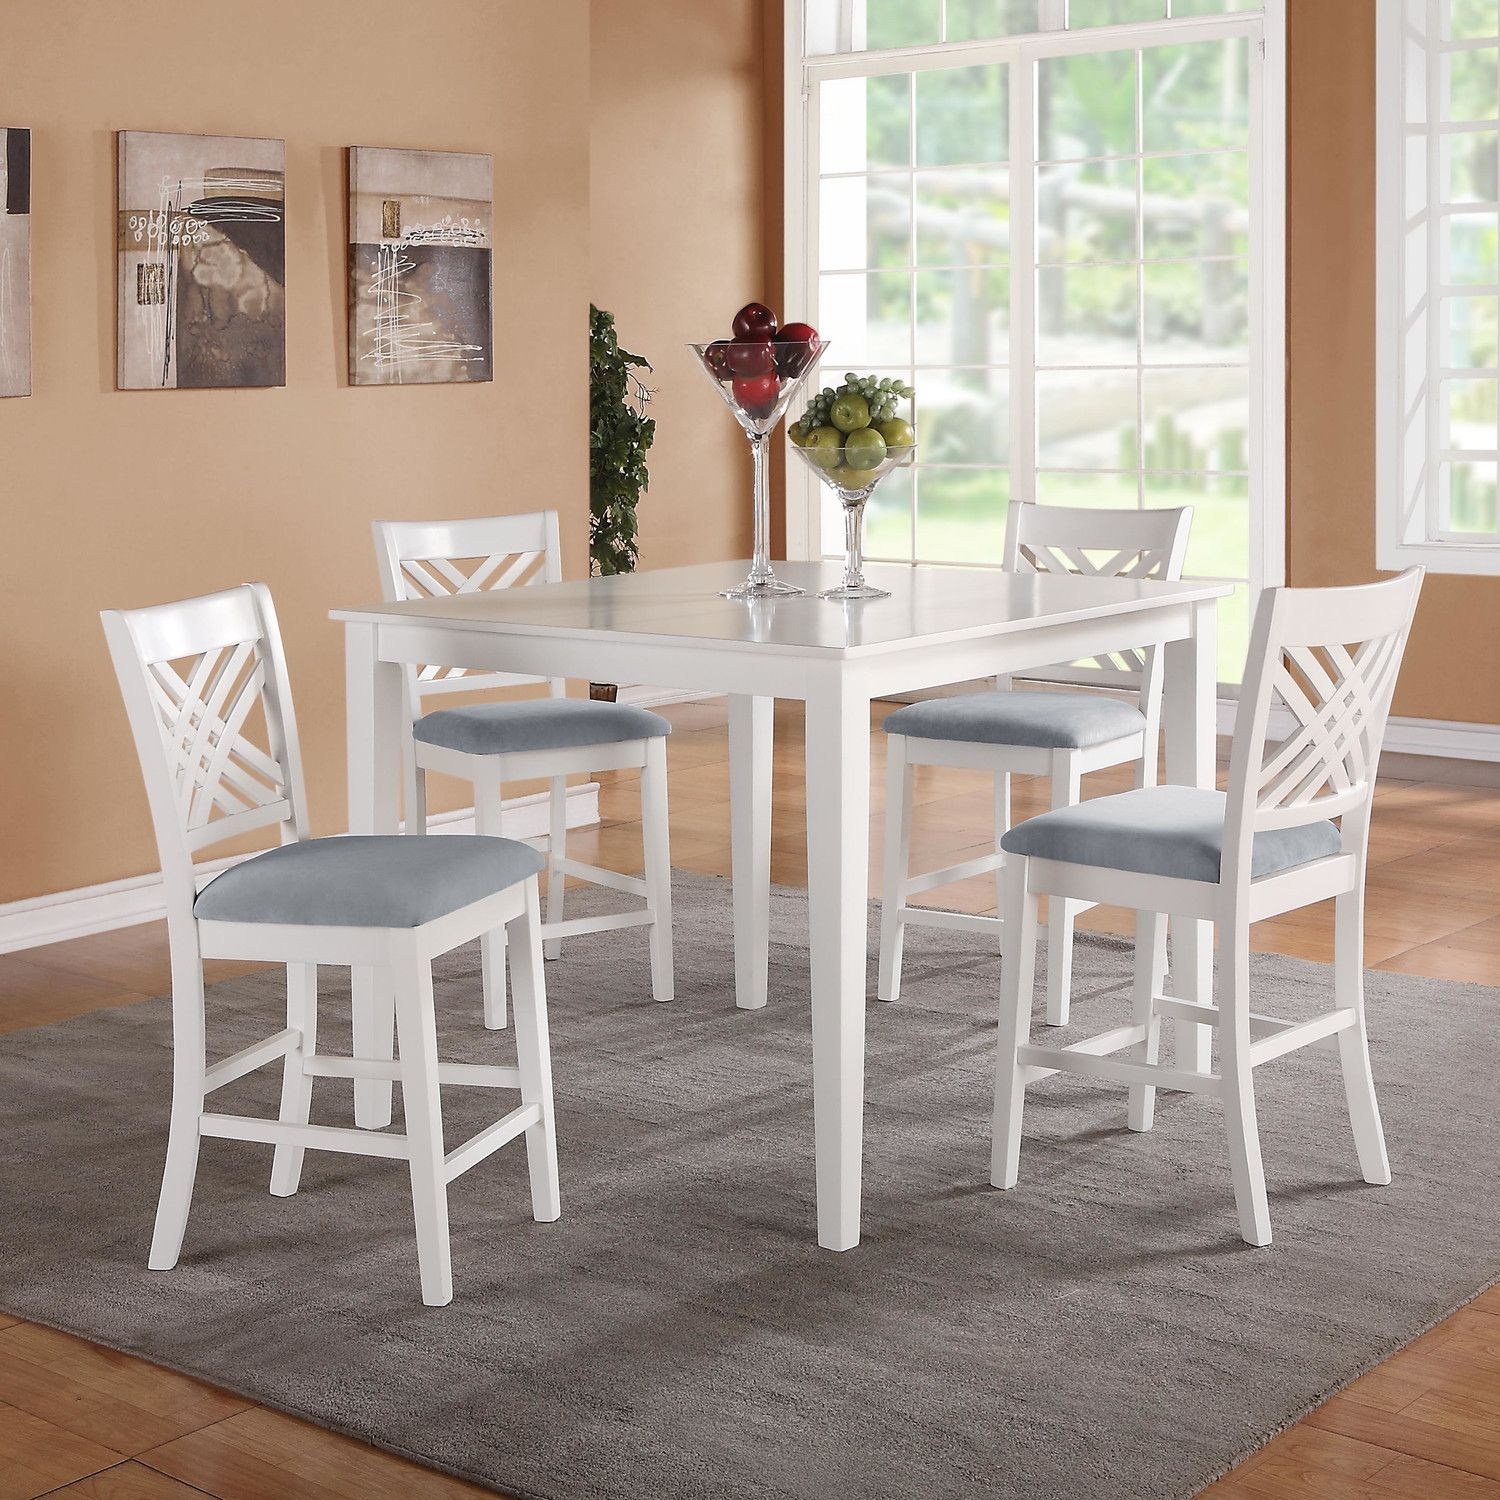 coastal kitchen table and chairs sliding shelves standard furniture brooklyn 5 piece dining set beach